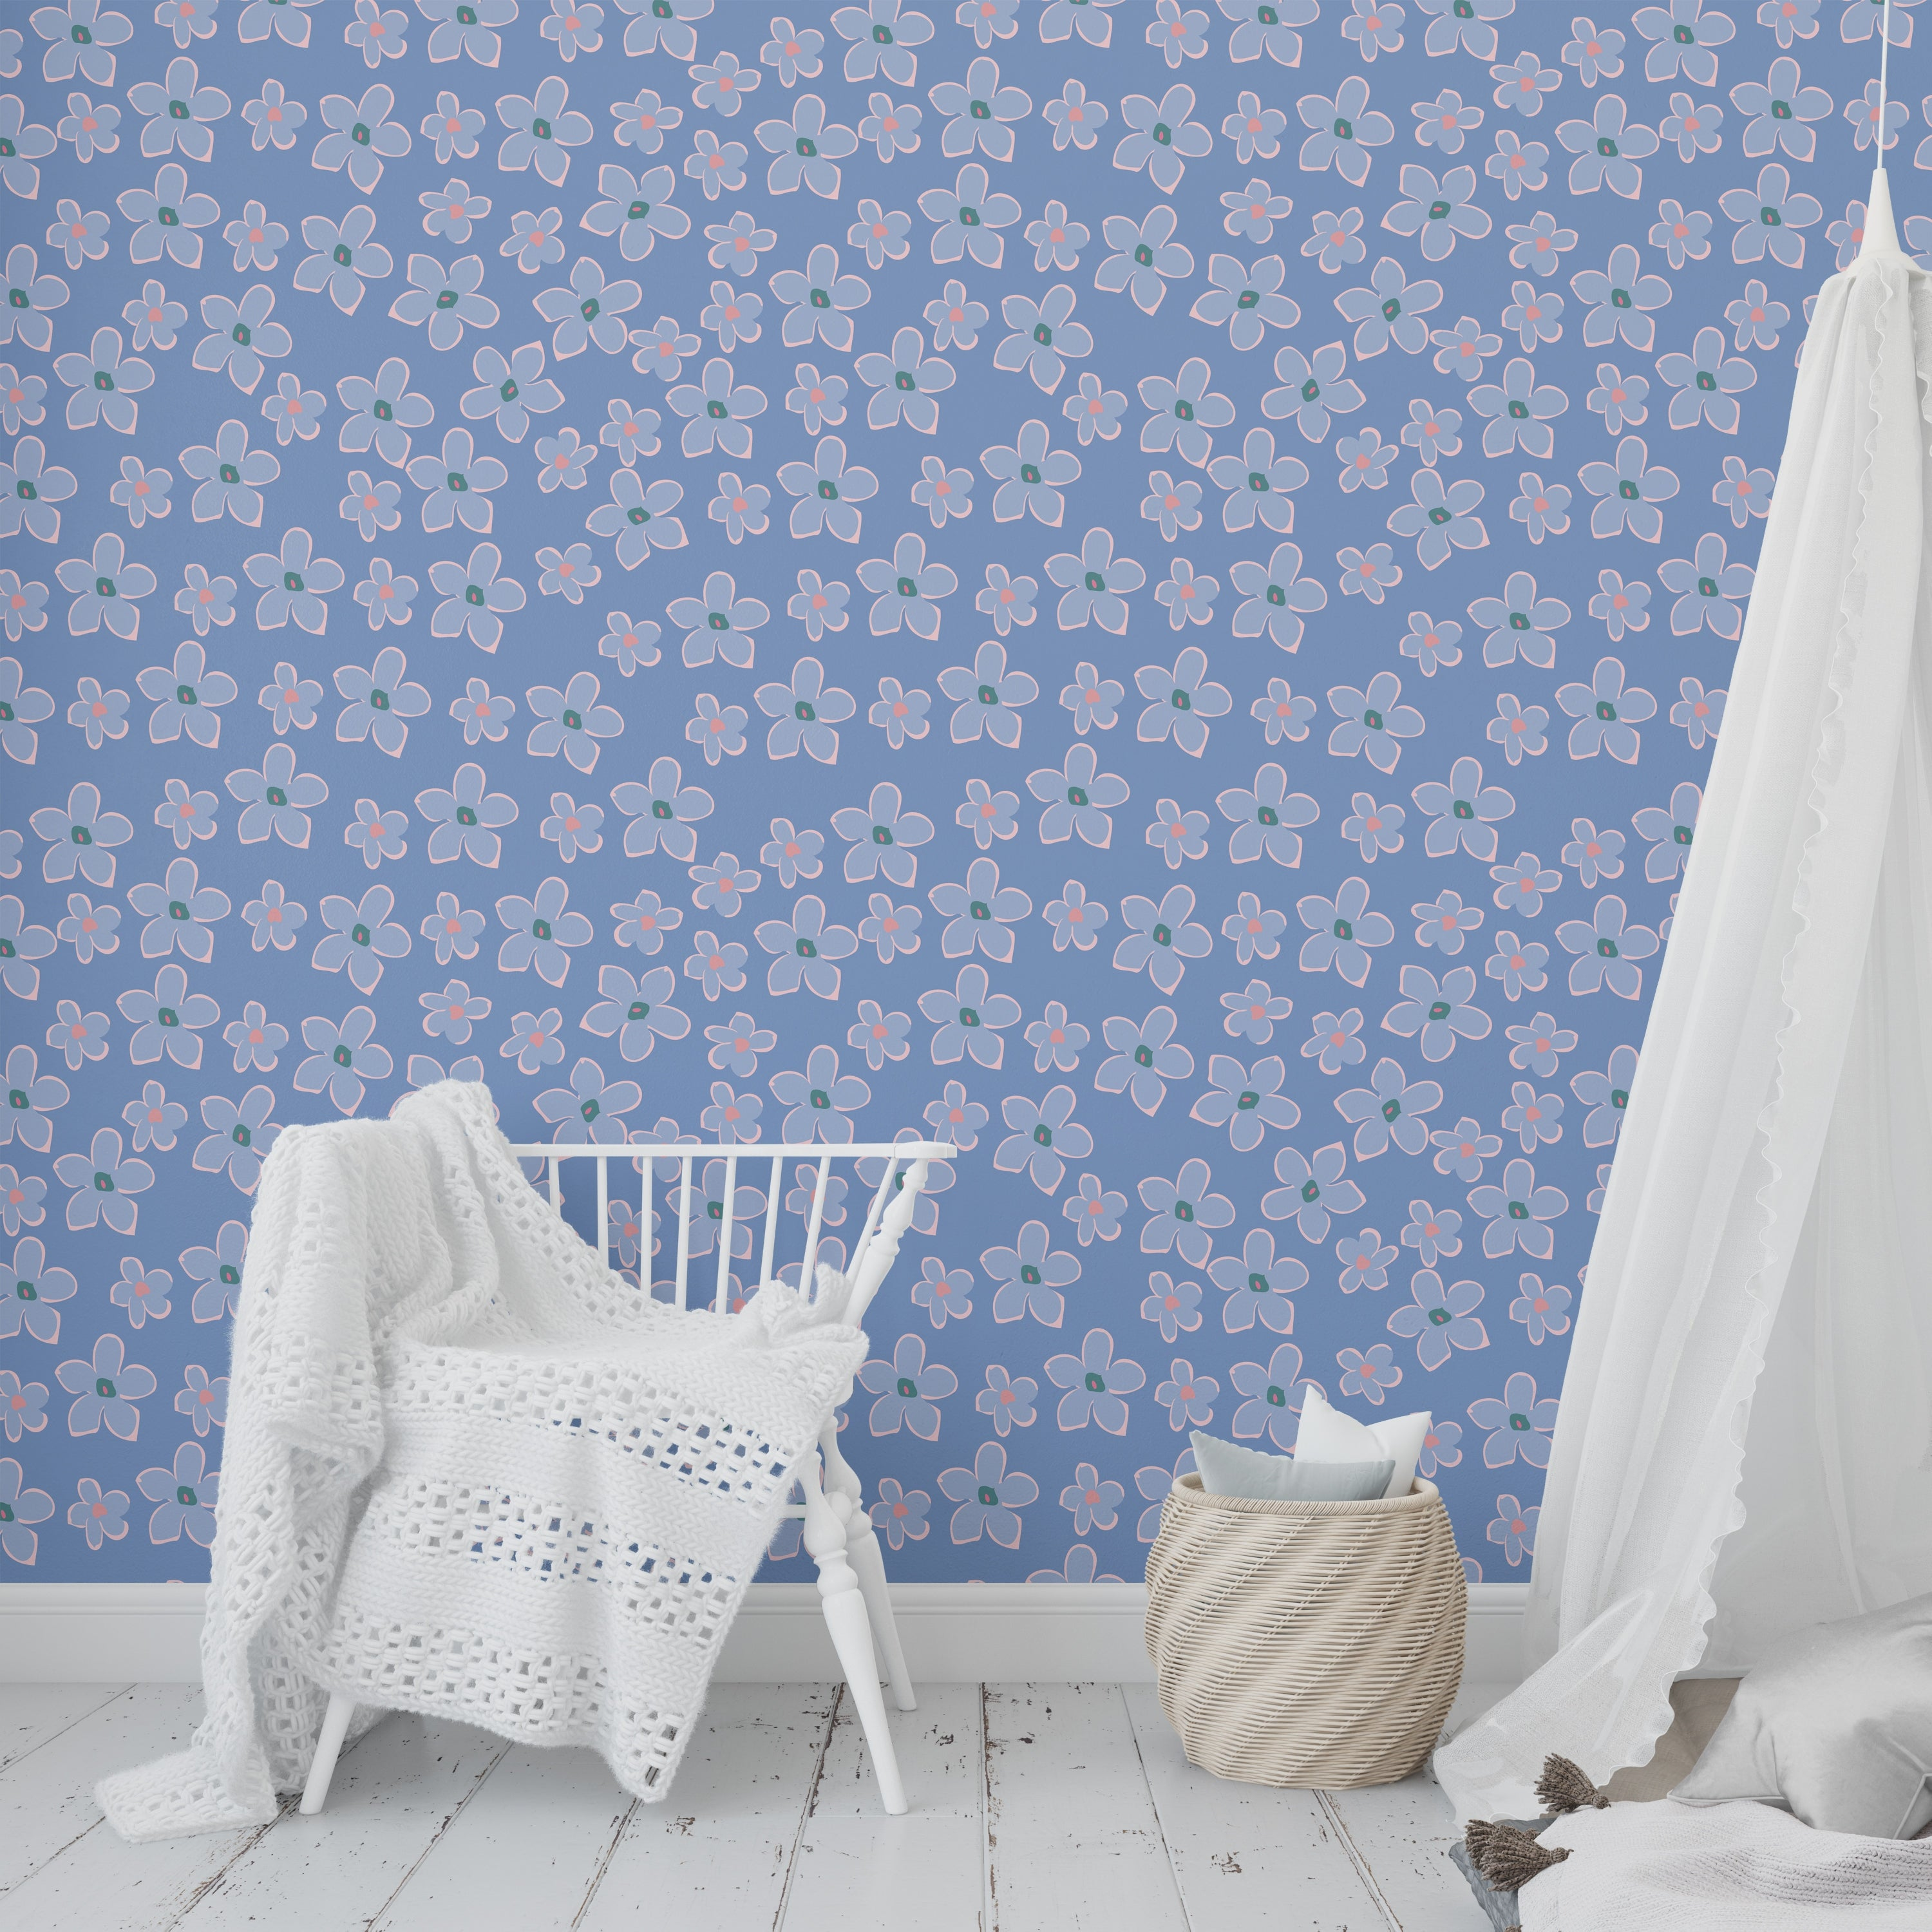 Shop Boho Floral Blue Peel And Stick Wallpaper By Kavka Designs 2 X 16 On Sale Overstock 31638044